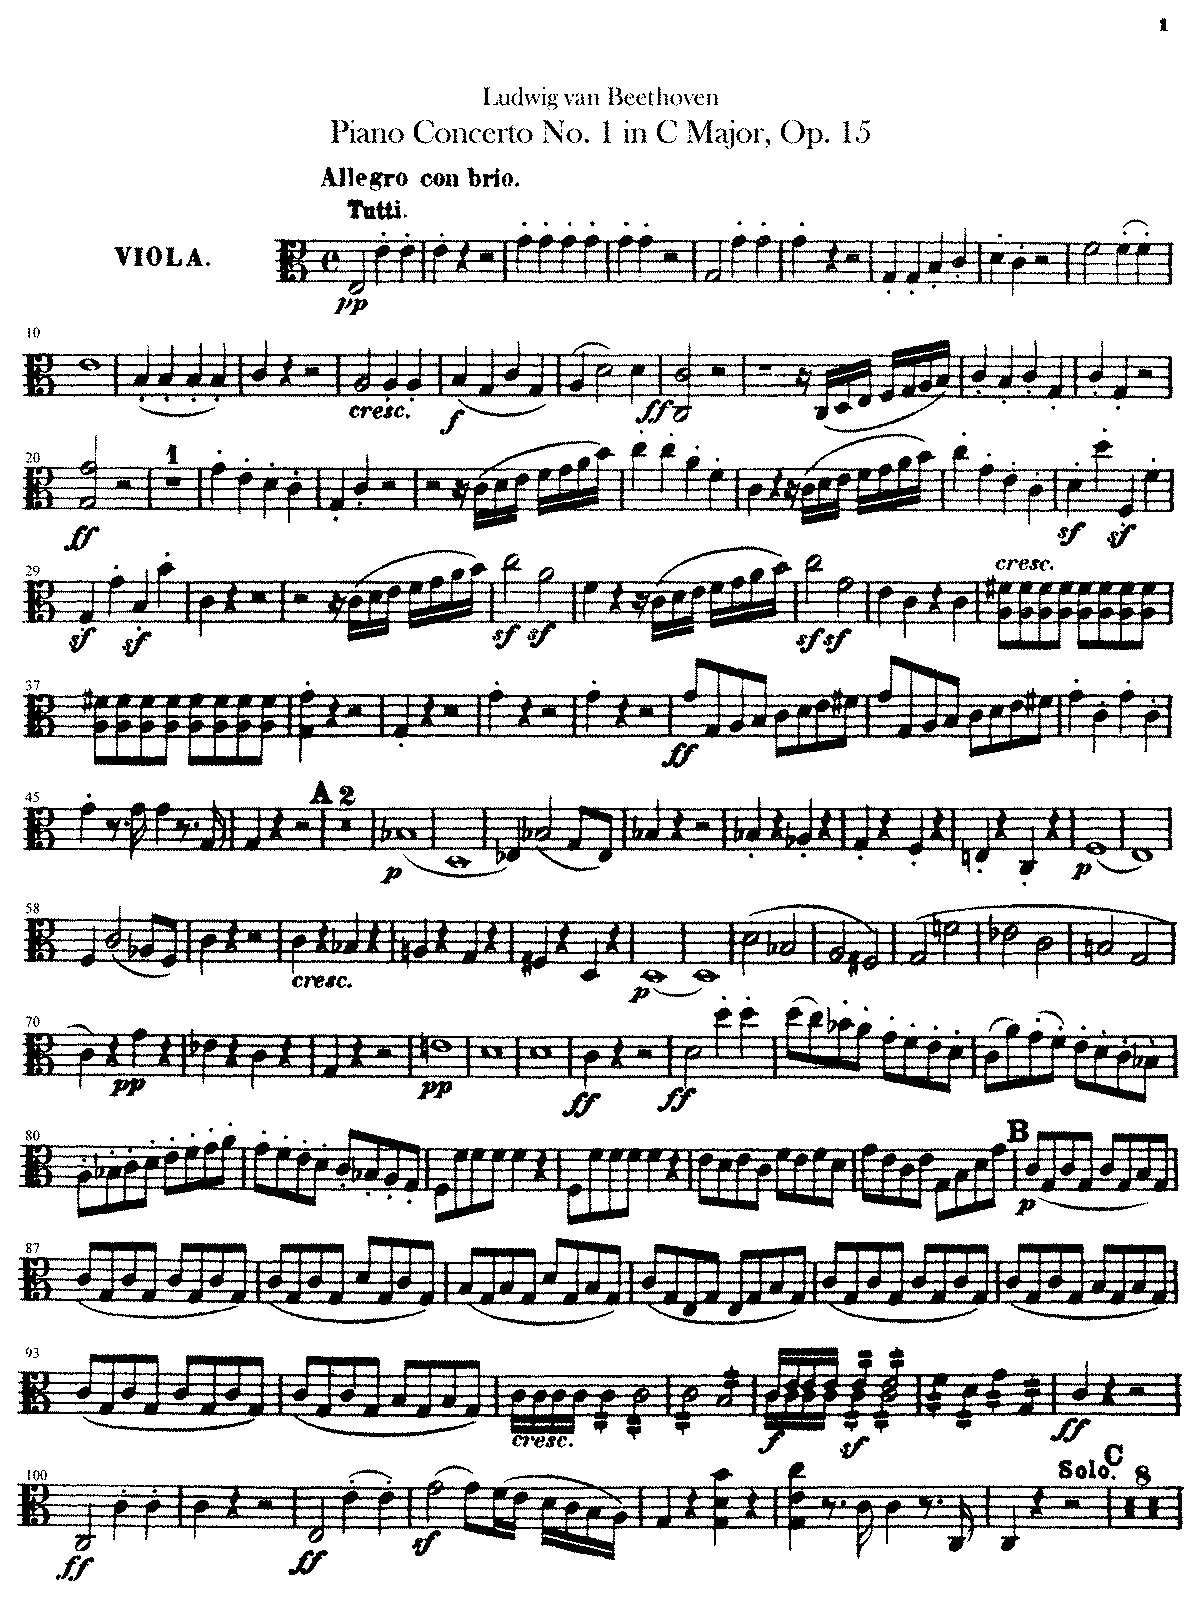 PMLP04230-IMSLP35084-PMLP04230-Beethoven-Op015.10viola Bar numbers added bar corrected.pdf